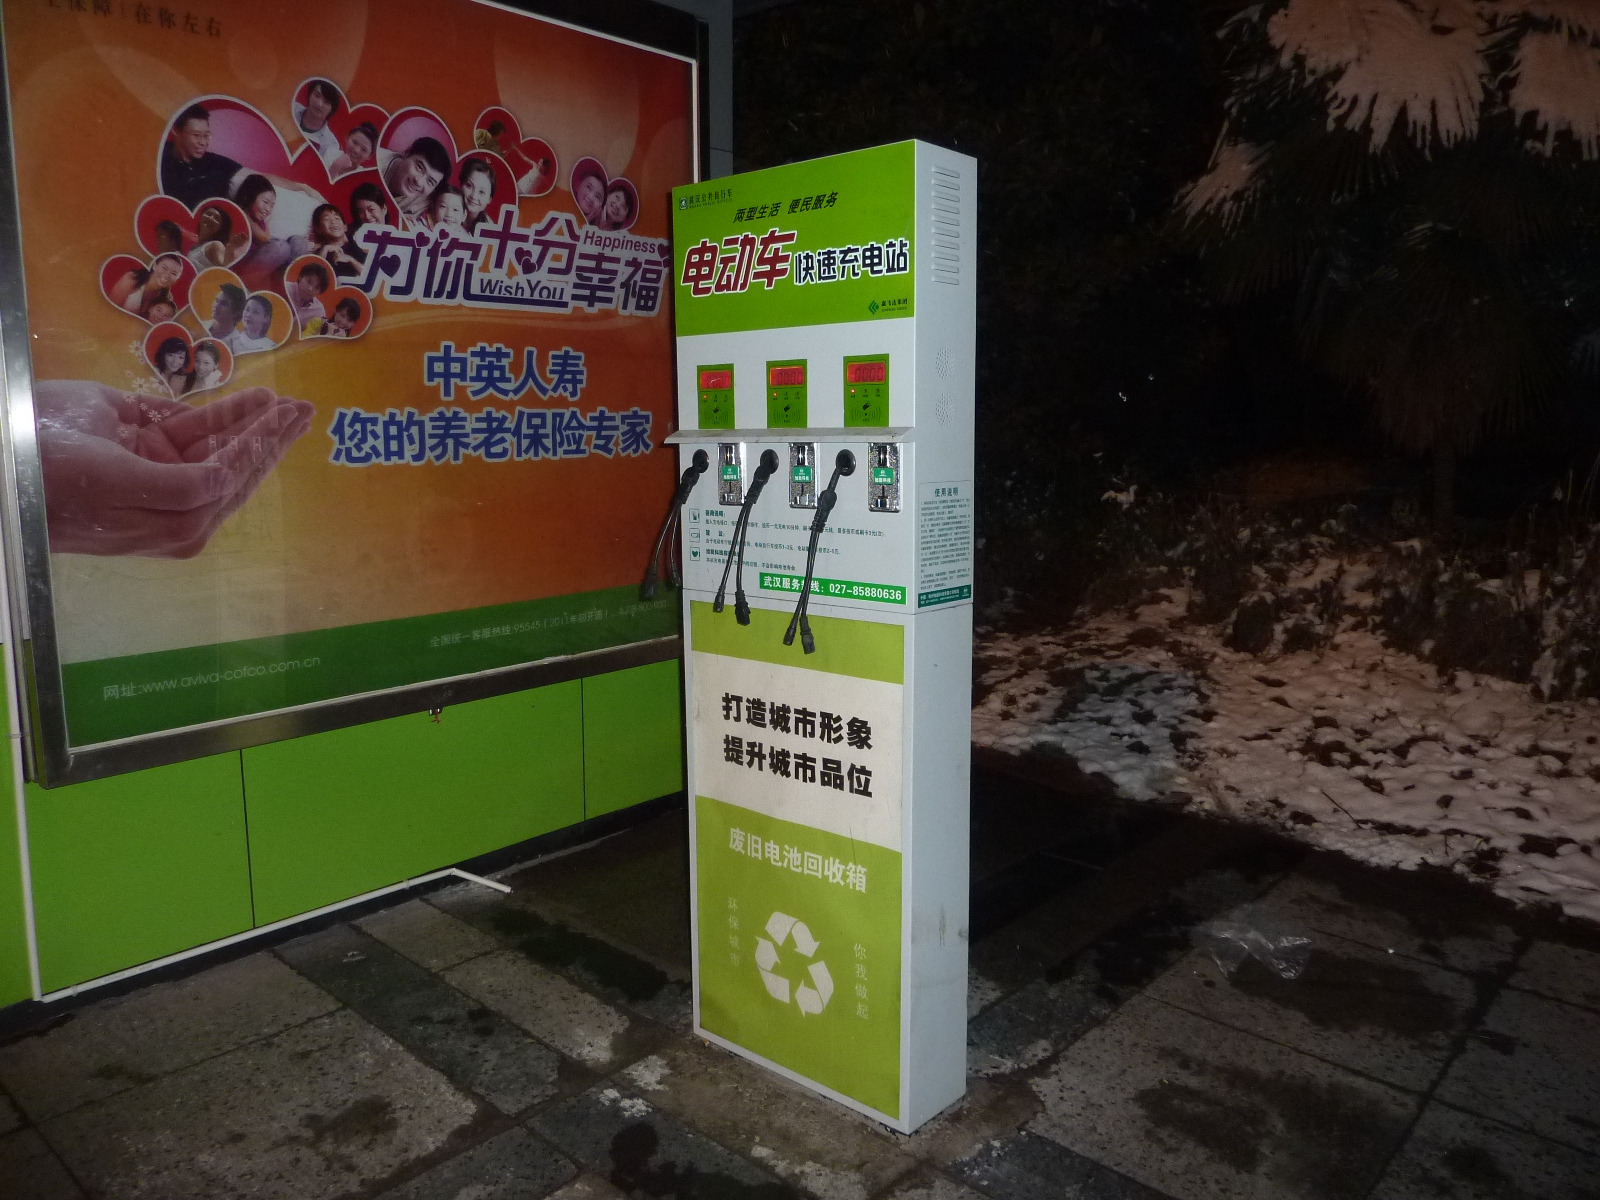 http://upload.wikimedia.org/wikipedia/commons/c/cb/Wuhan_-_electric_bicycle_and_scooter_charging_station_-_P1050036.JPG